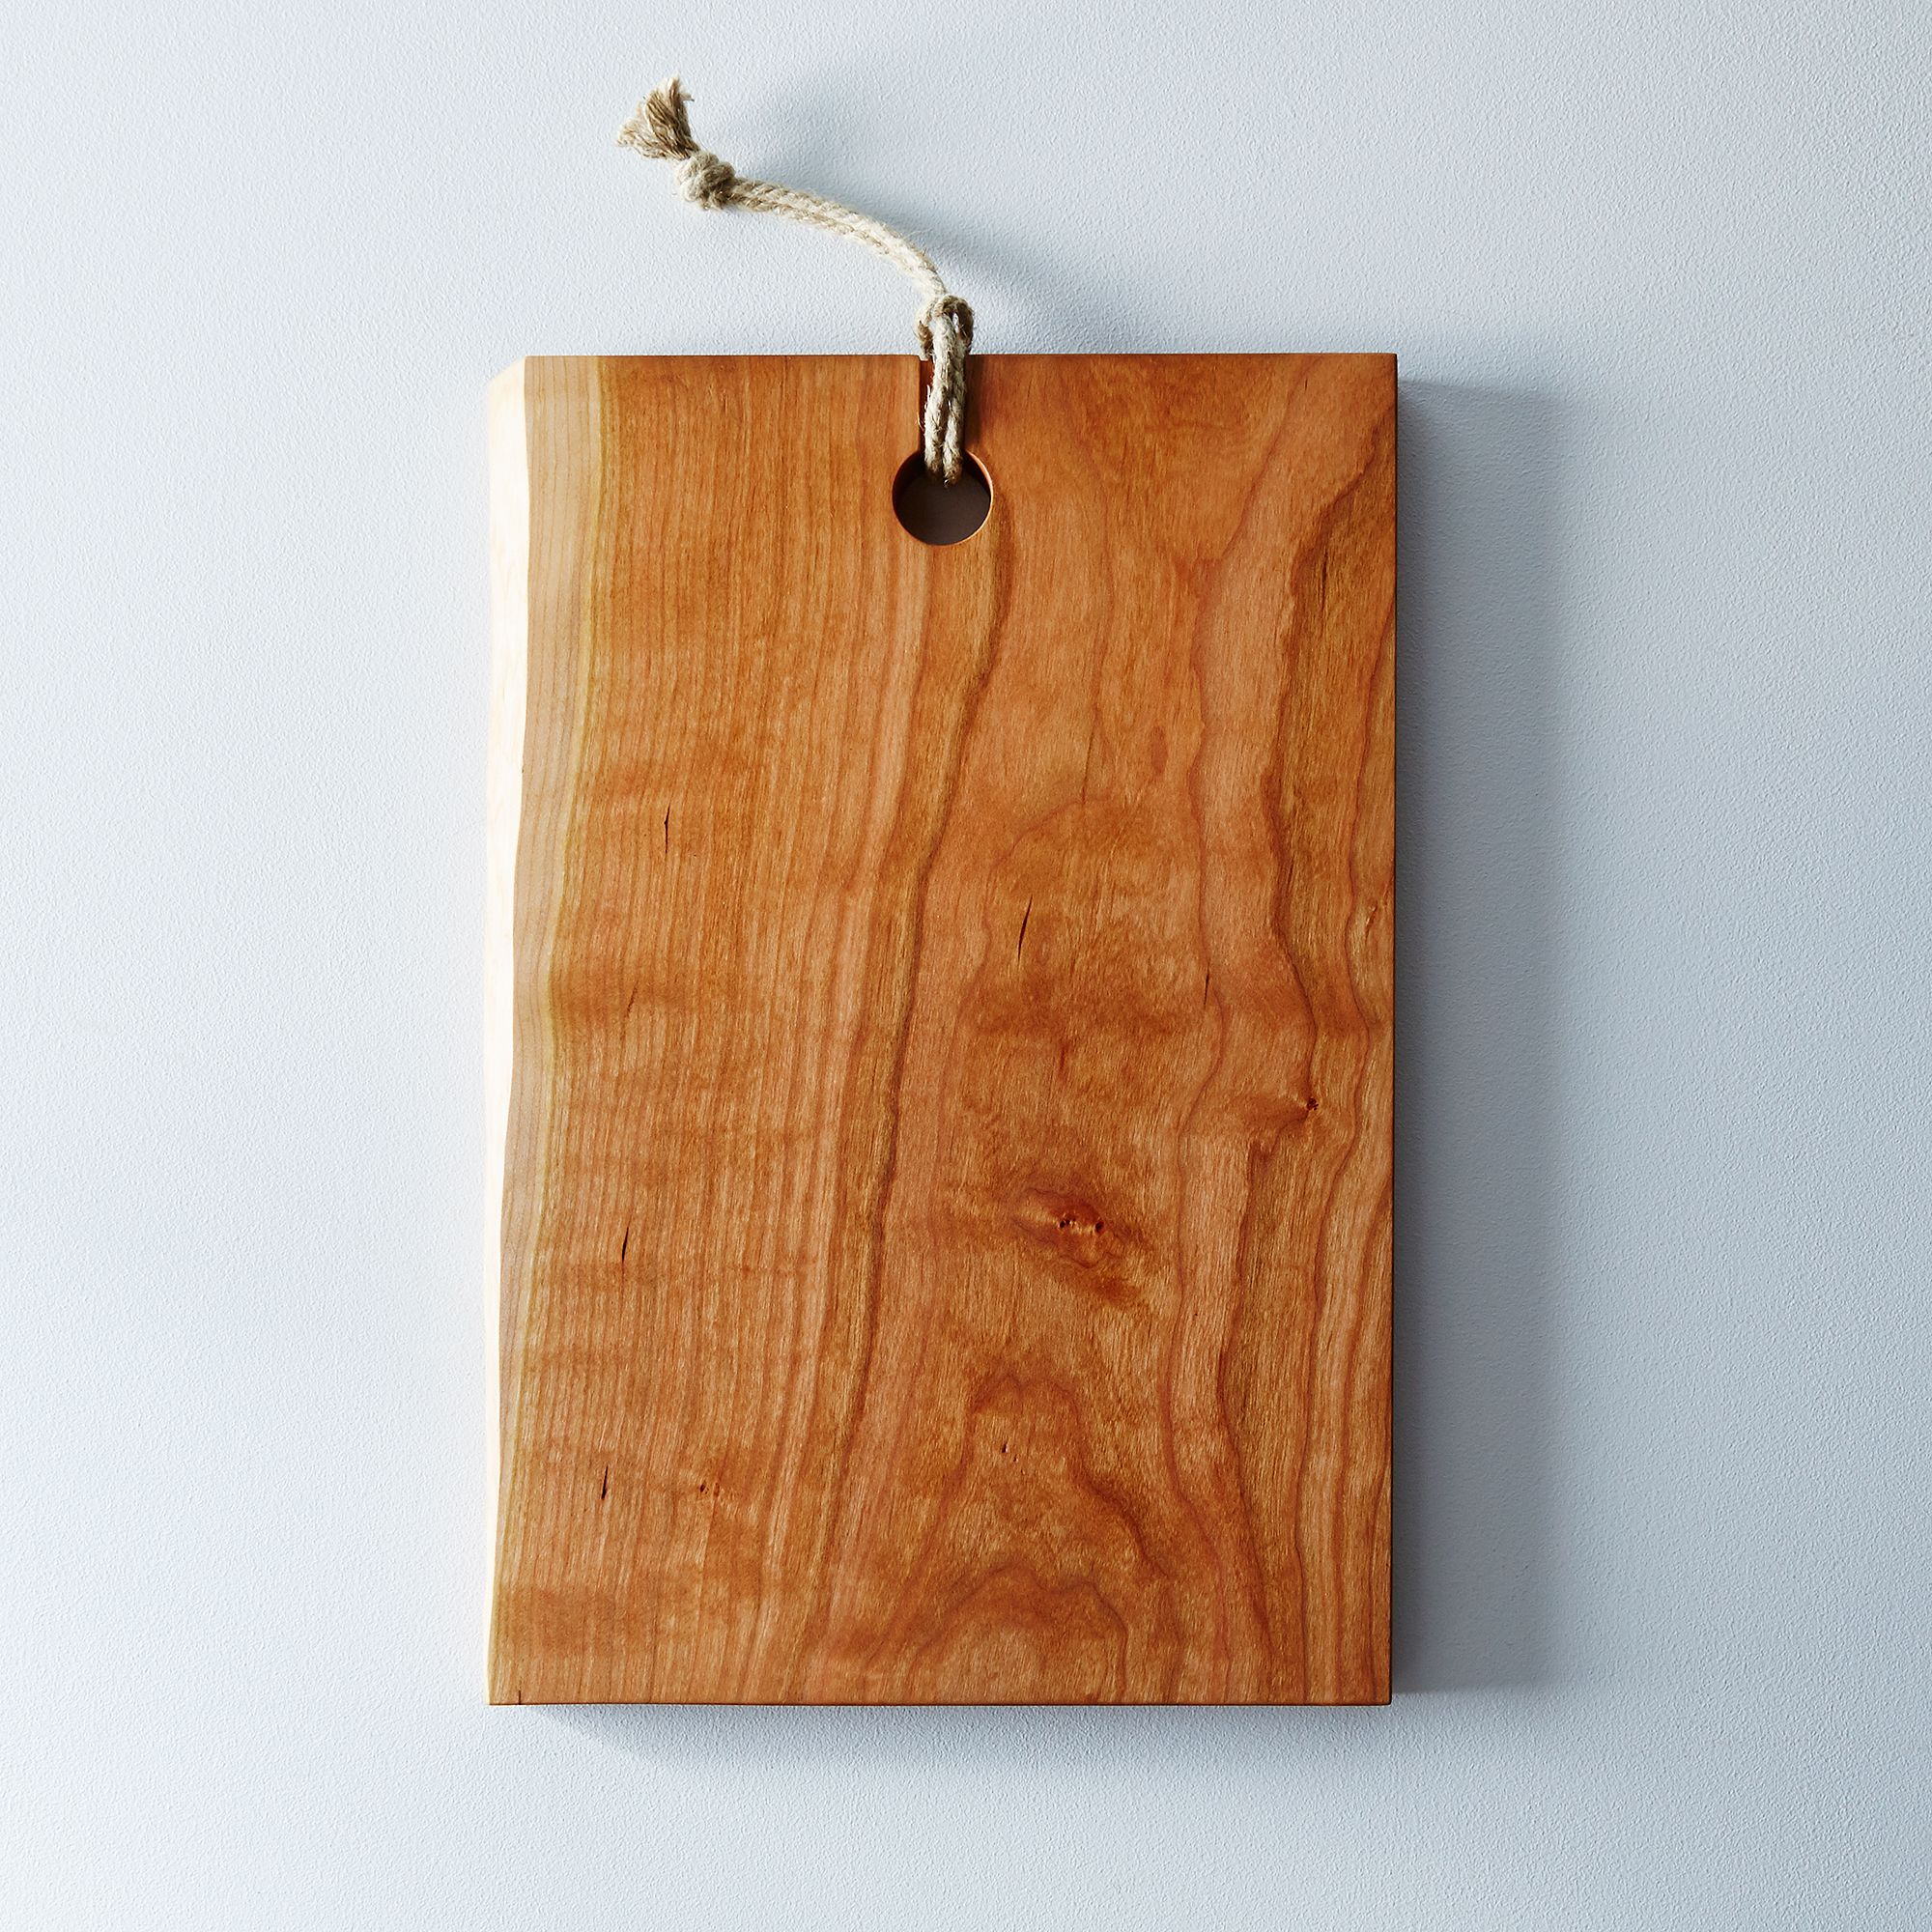 9b085611 dba0 46b8 a363 1e9fd1b89420  2015 0710 yoav s liberman live edge domestic wood serving cutting board silo james ransom 014